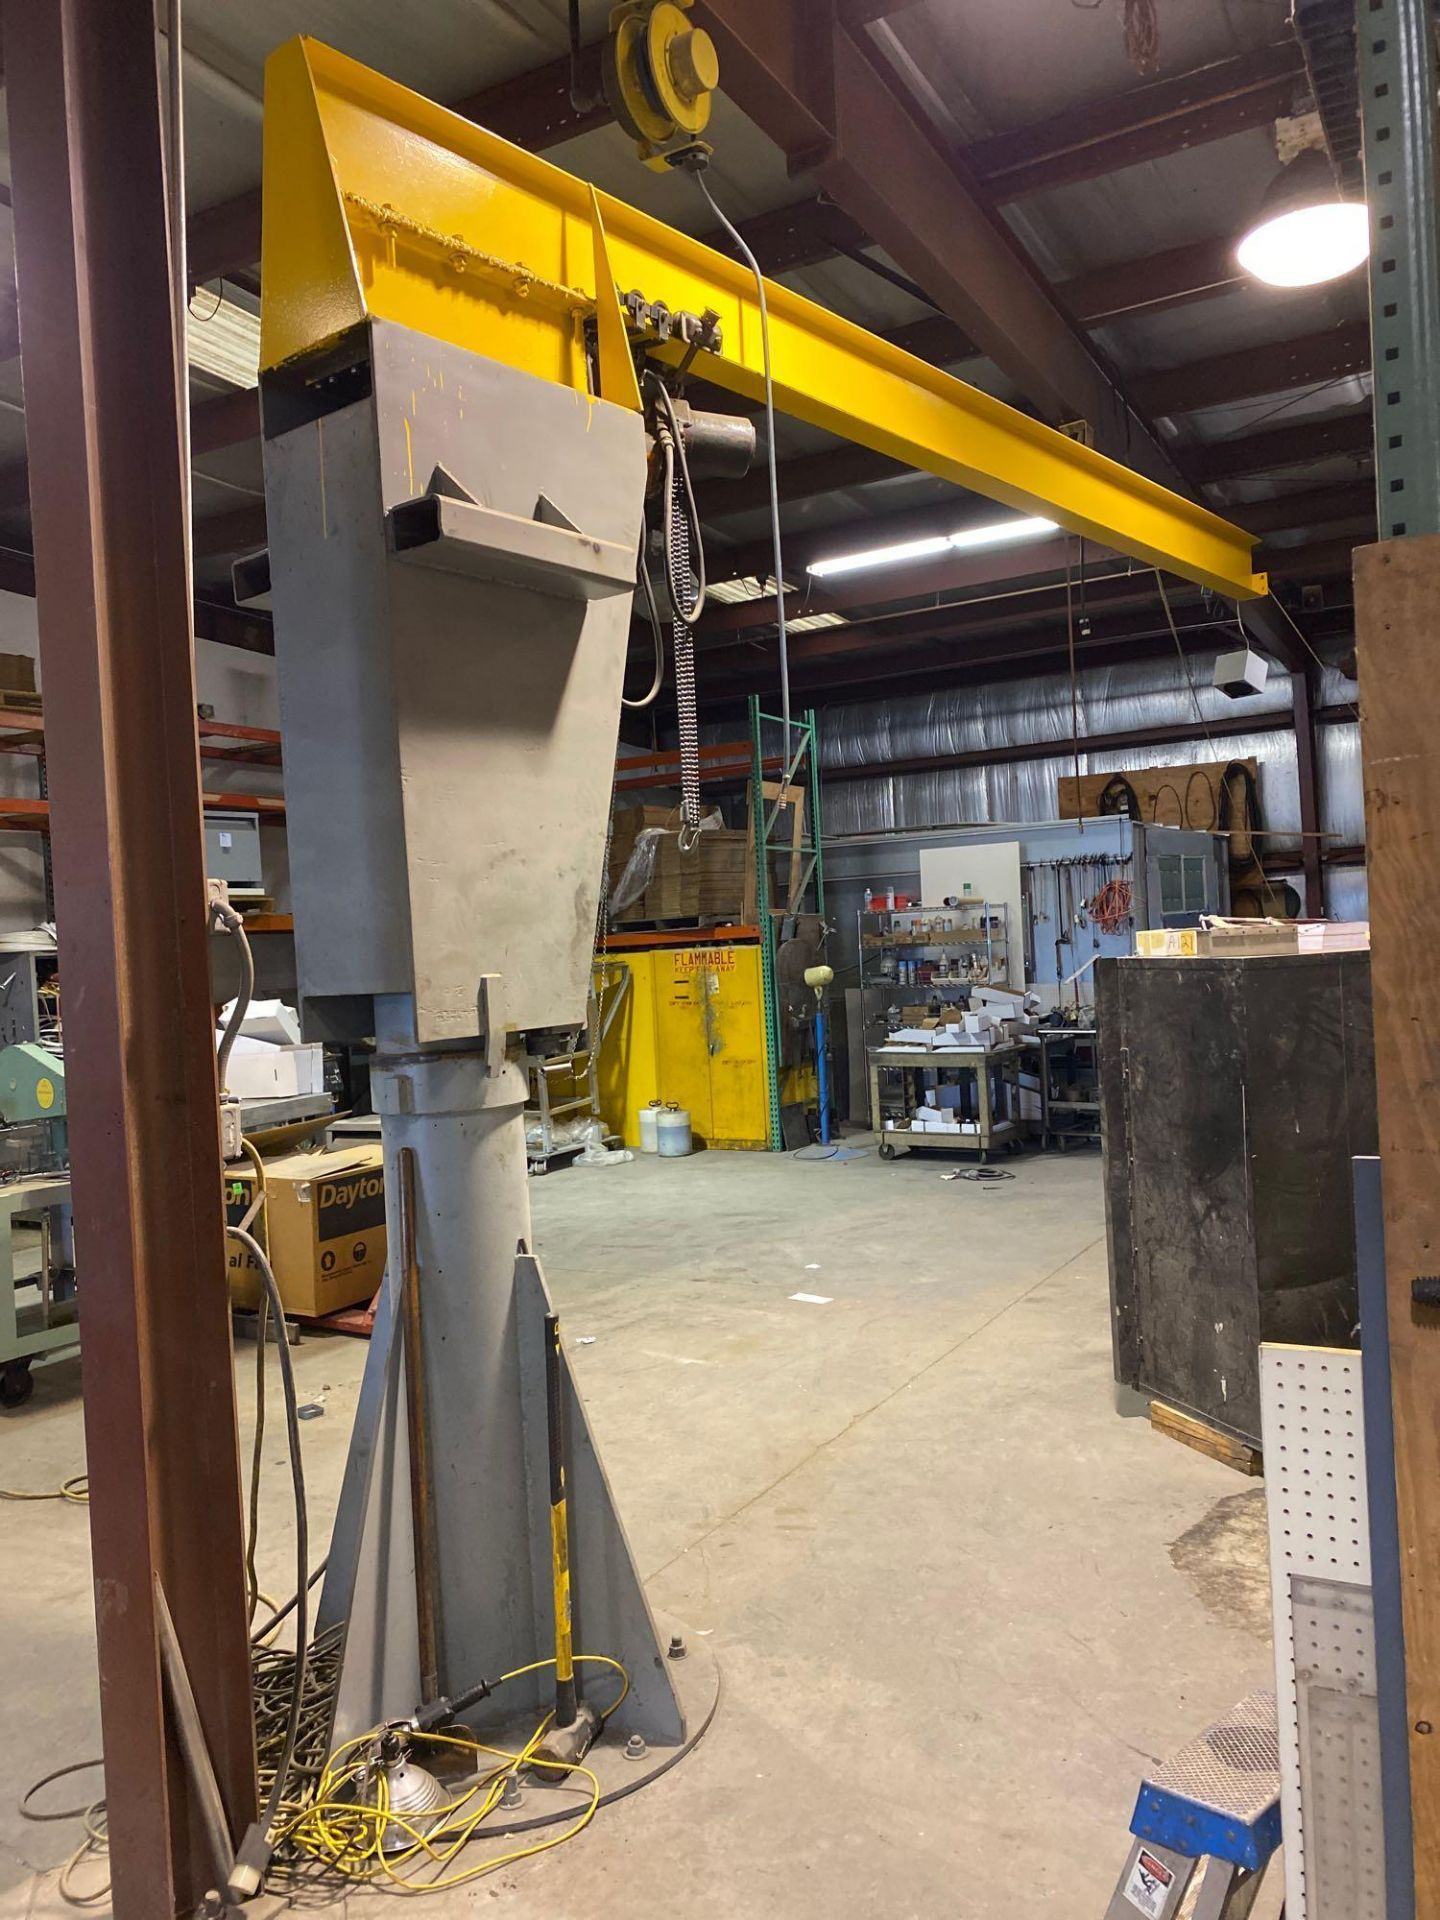 Over Head Jib Crane with Shannon Hoist and Yale Pulley System